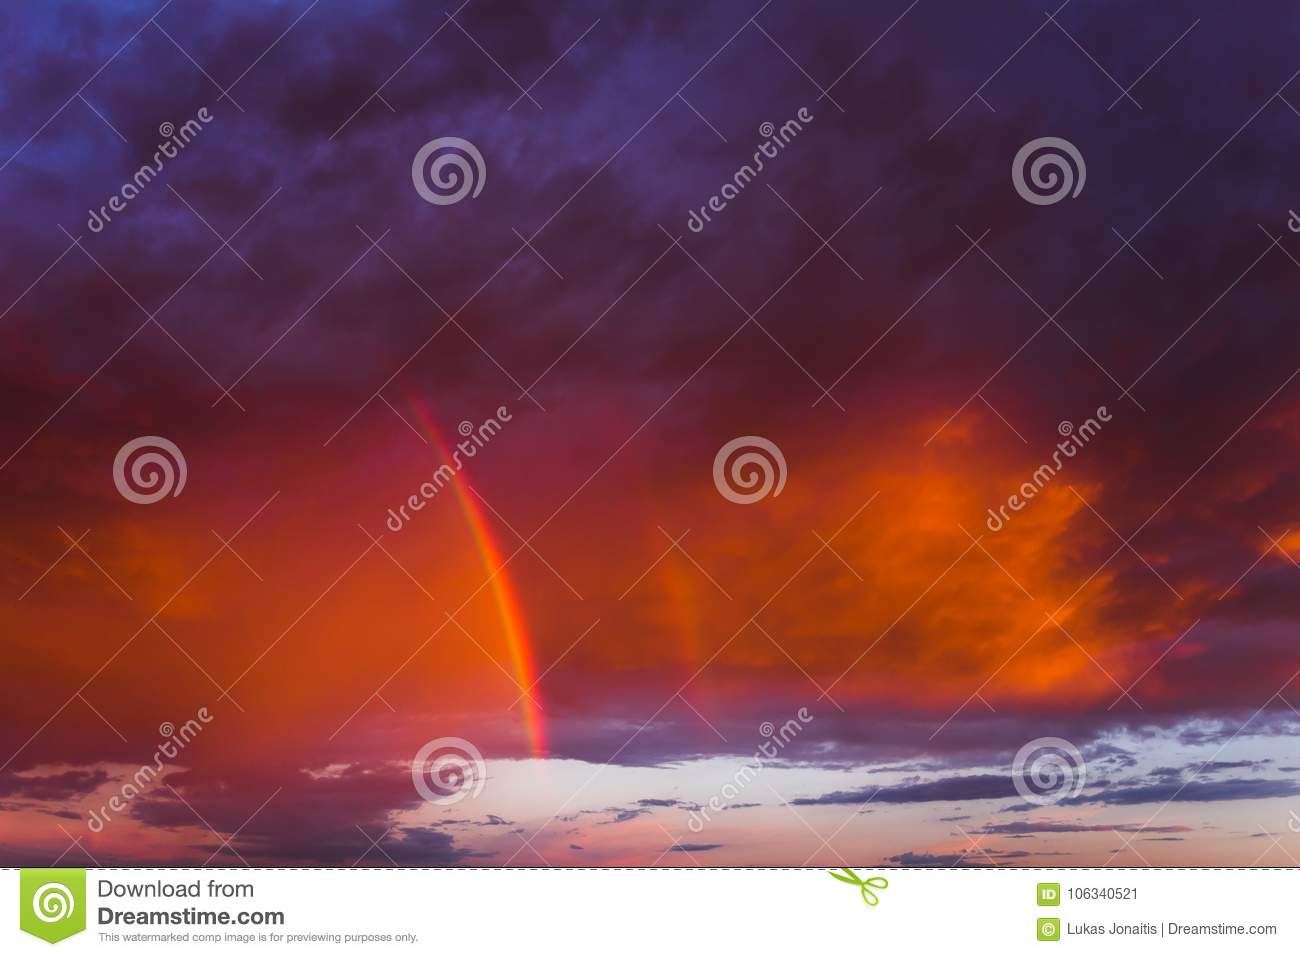 double rainbow in the sky stock image image of panorama 106340521double rainbow in the purple evening sky